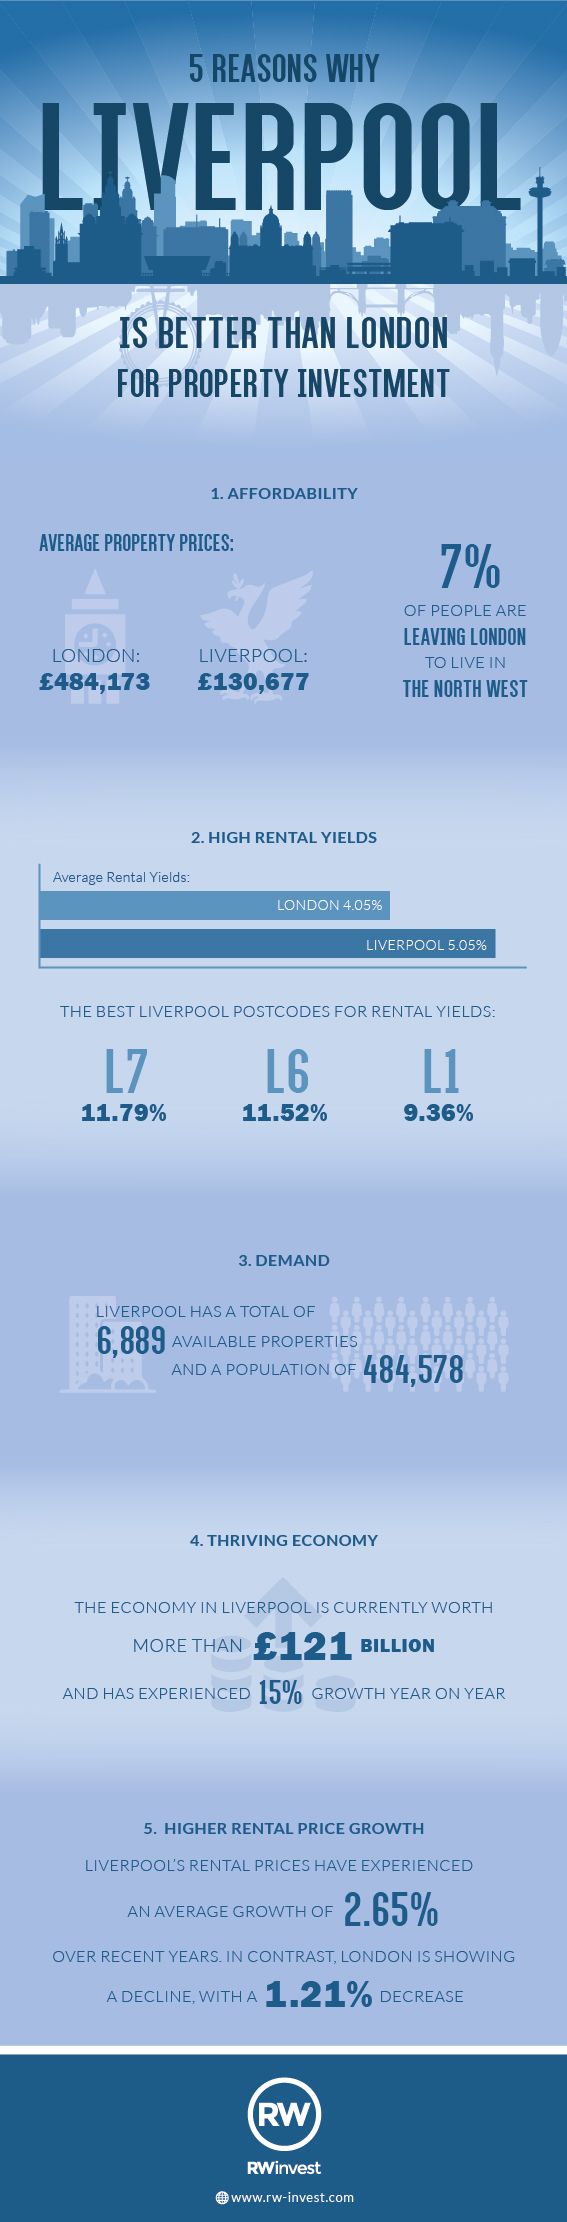 Infographic about why Liverpool is better than London for investments